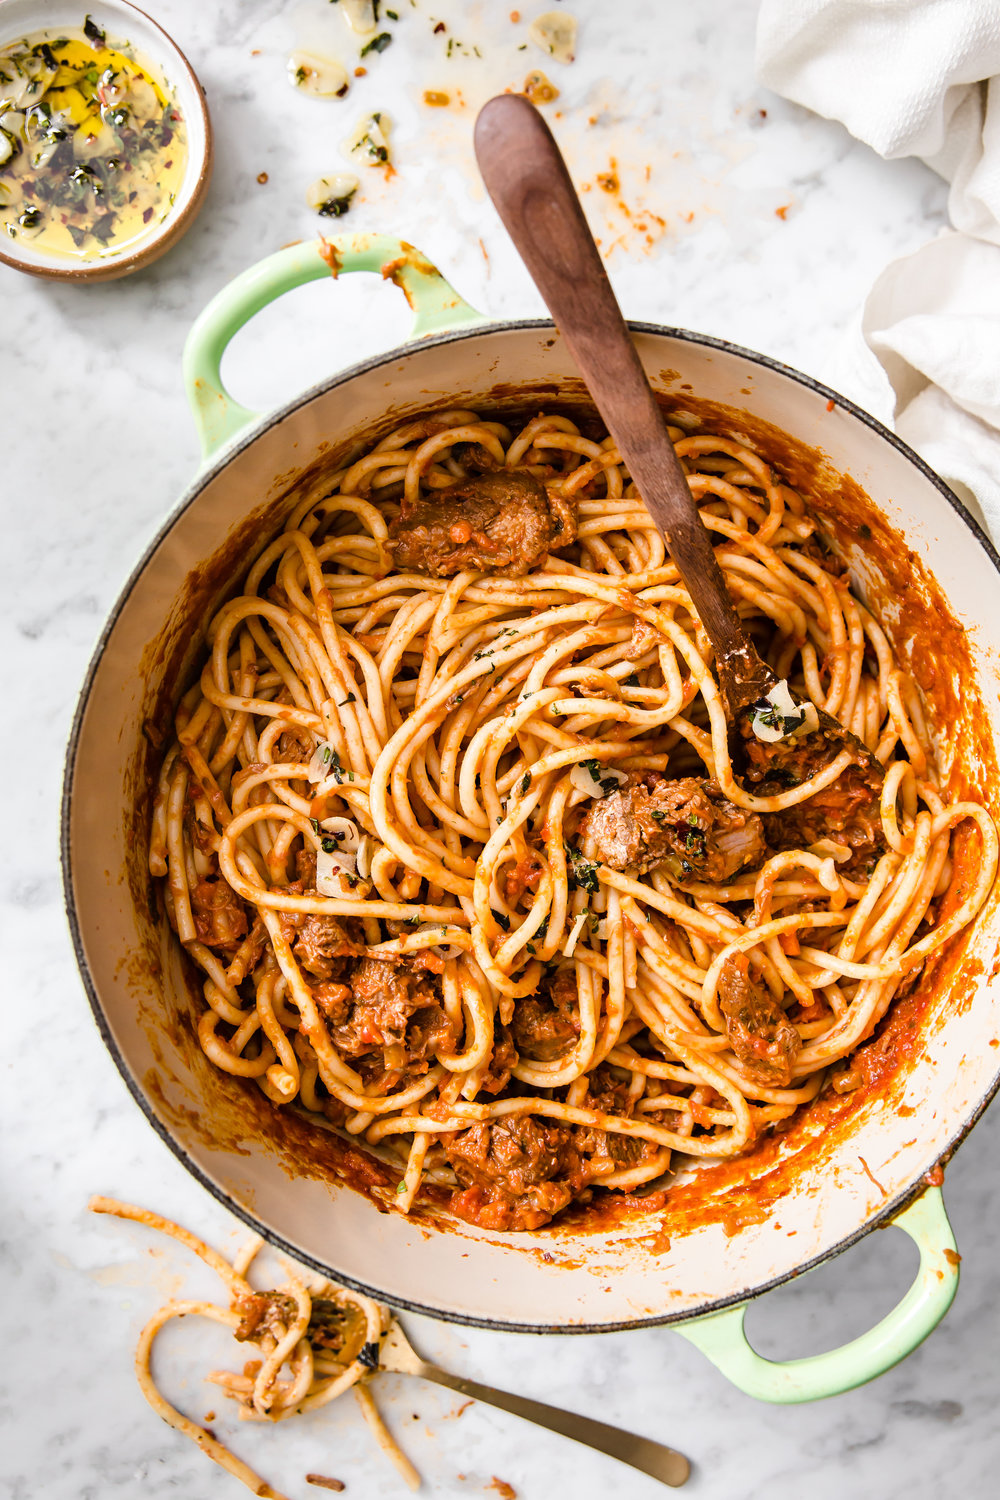 Bucatini with Lamb Ragu by Judy Kim